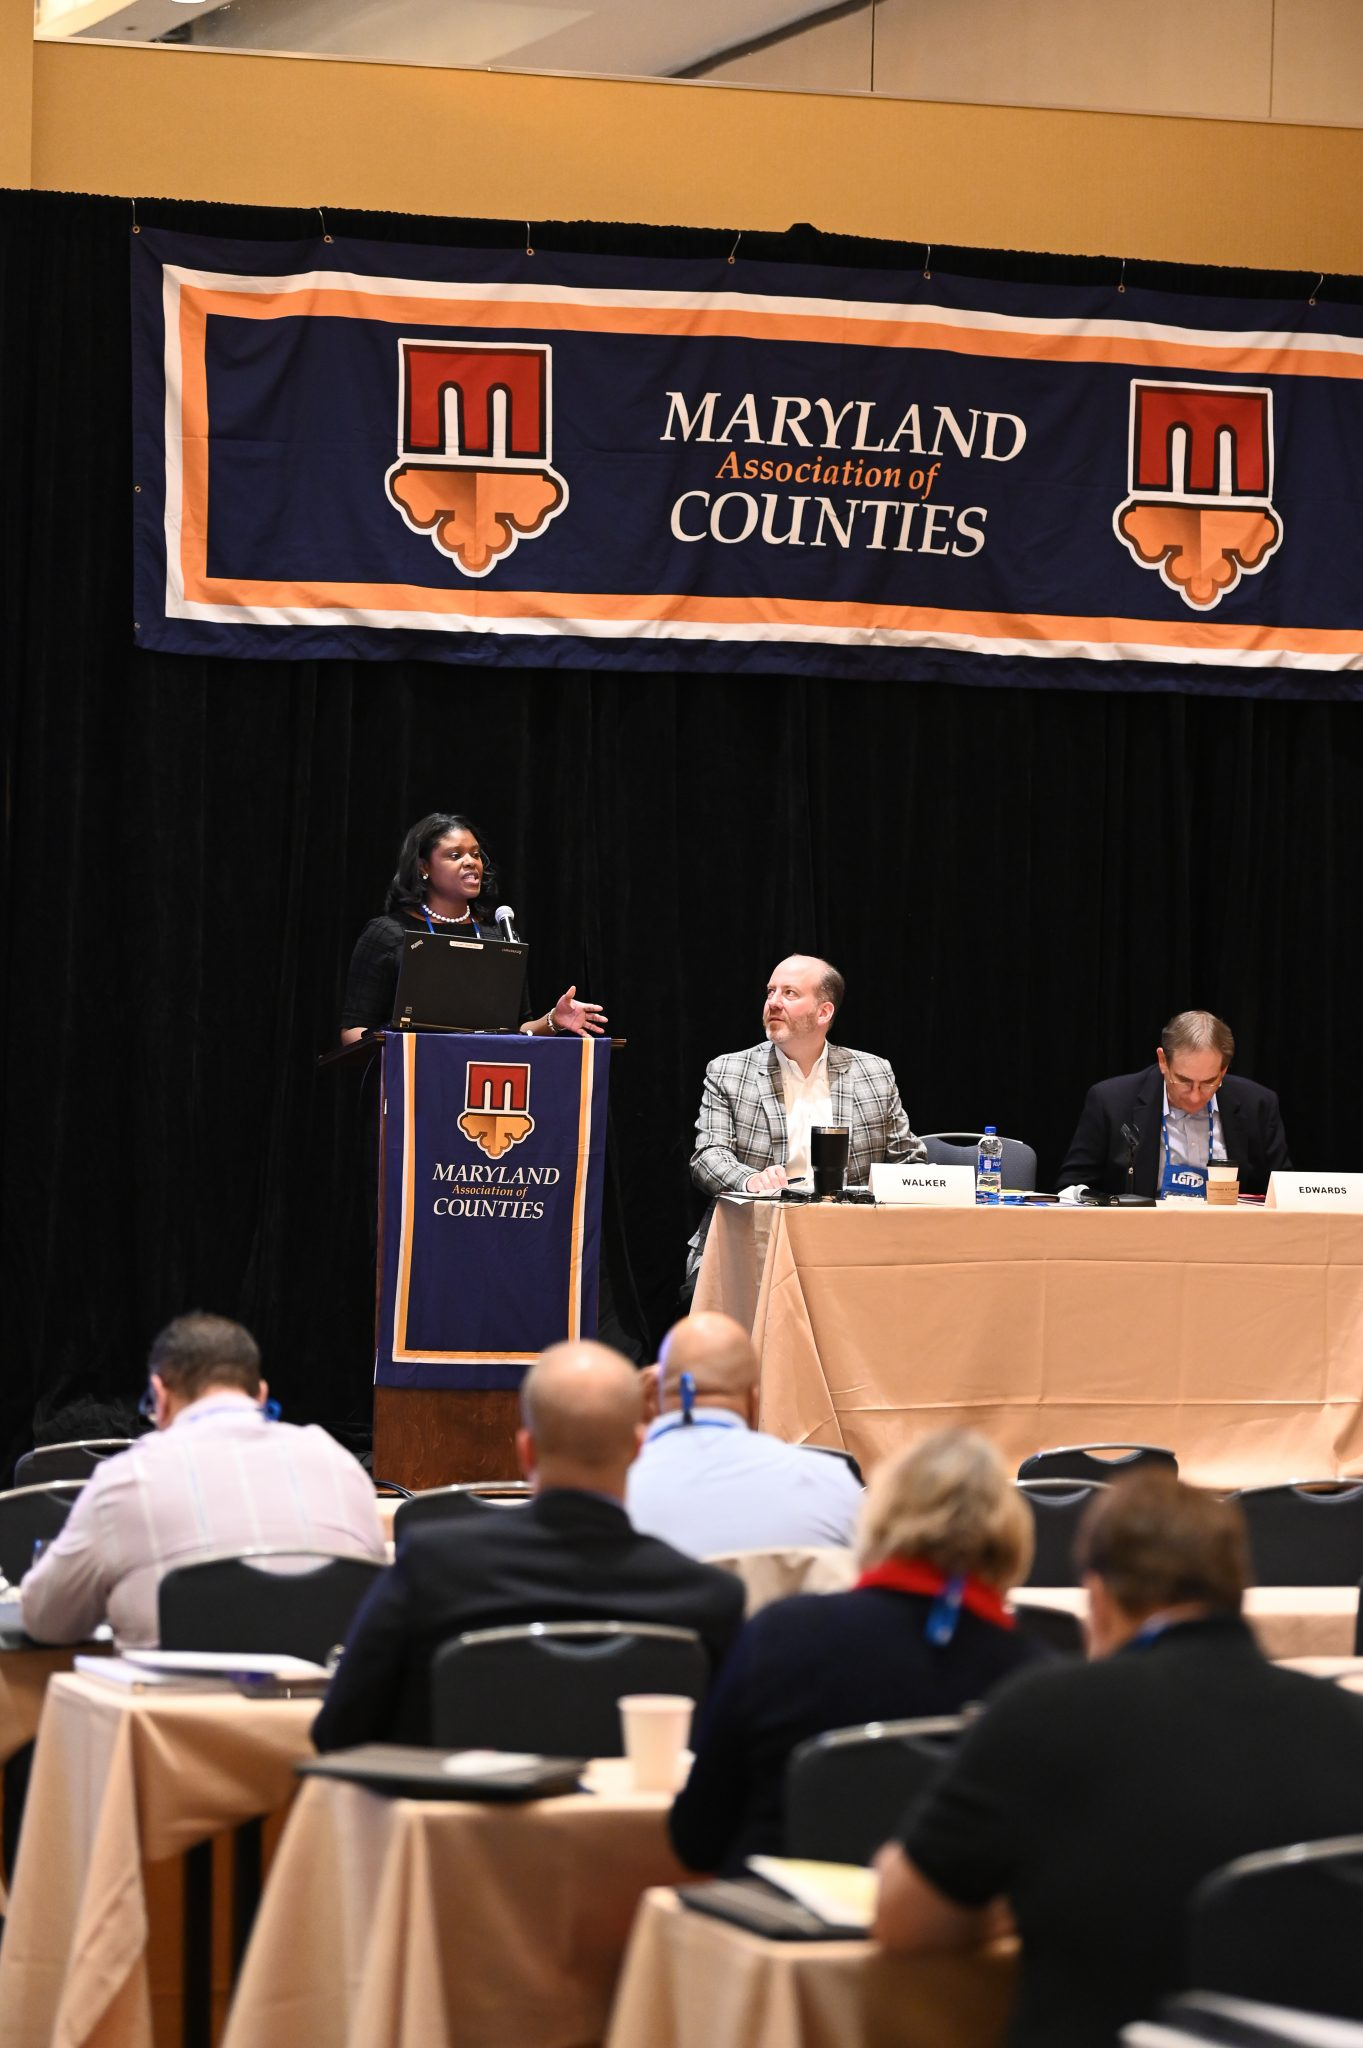 Submit a Topic Proposal for Winter #MACoCon – Due Sept 13